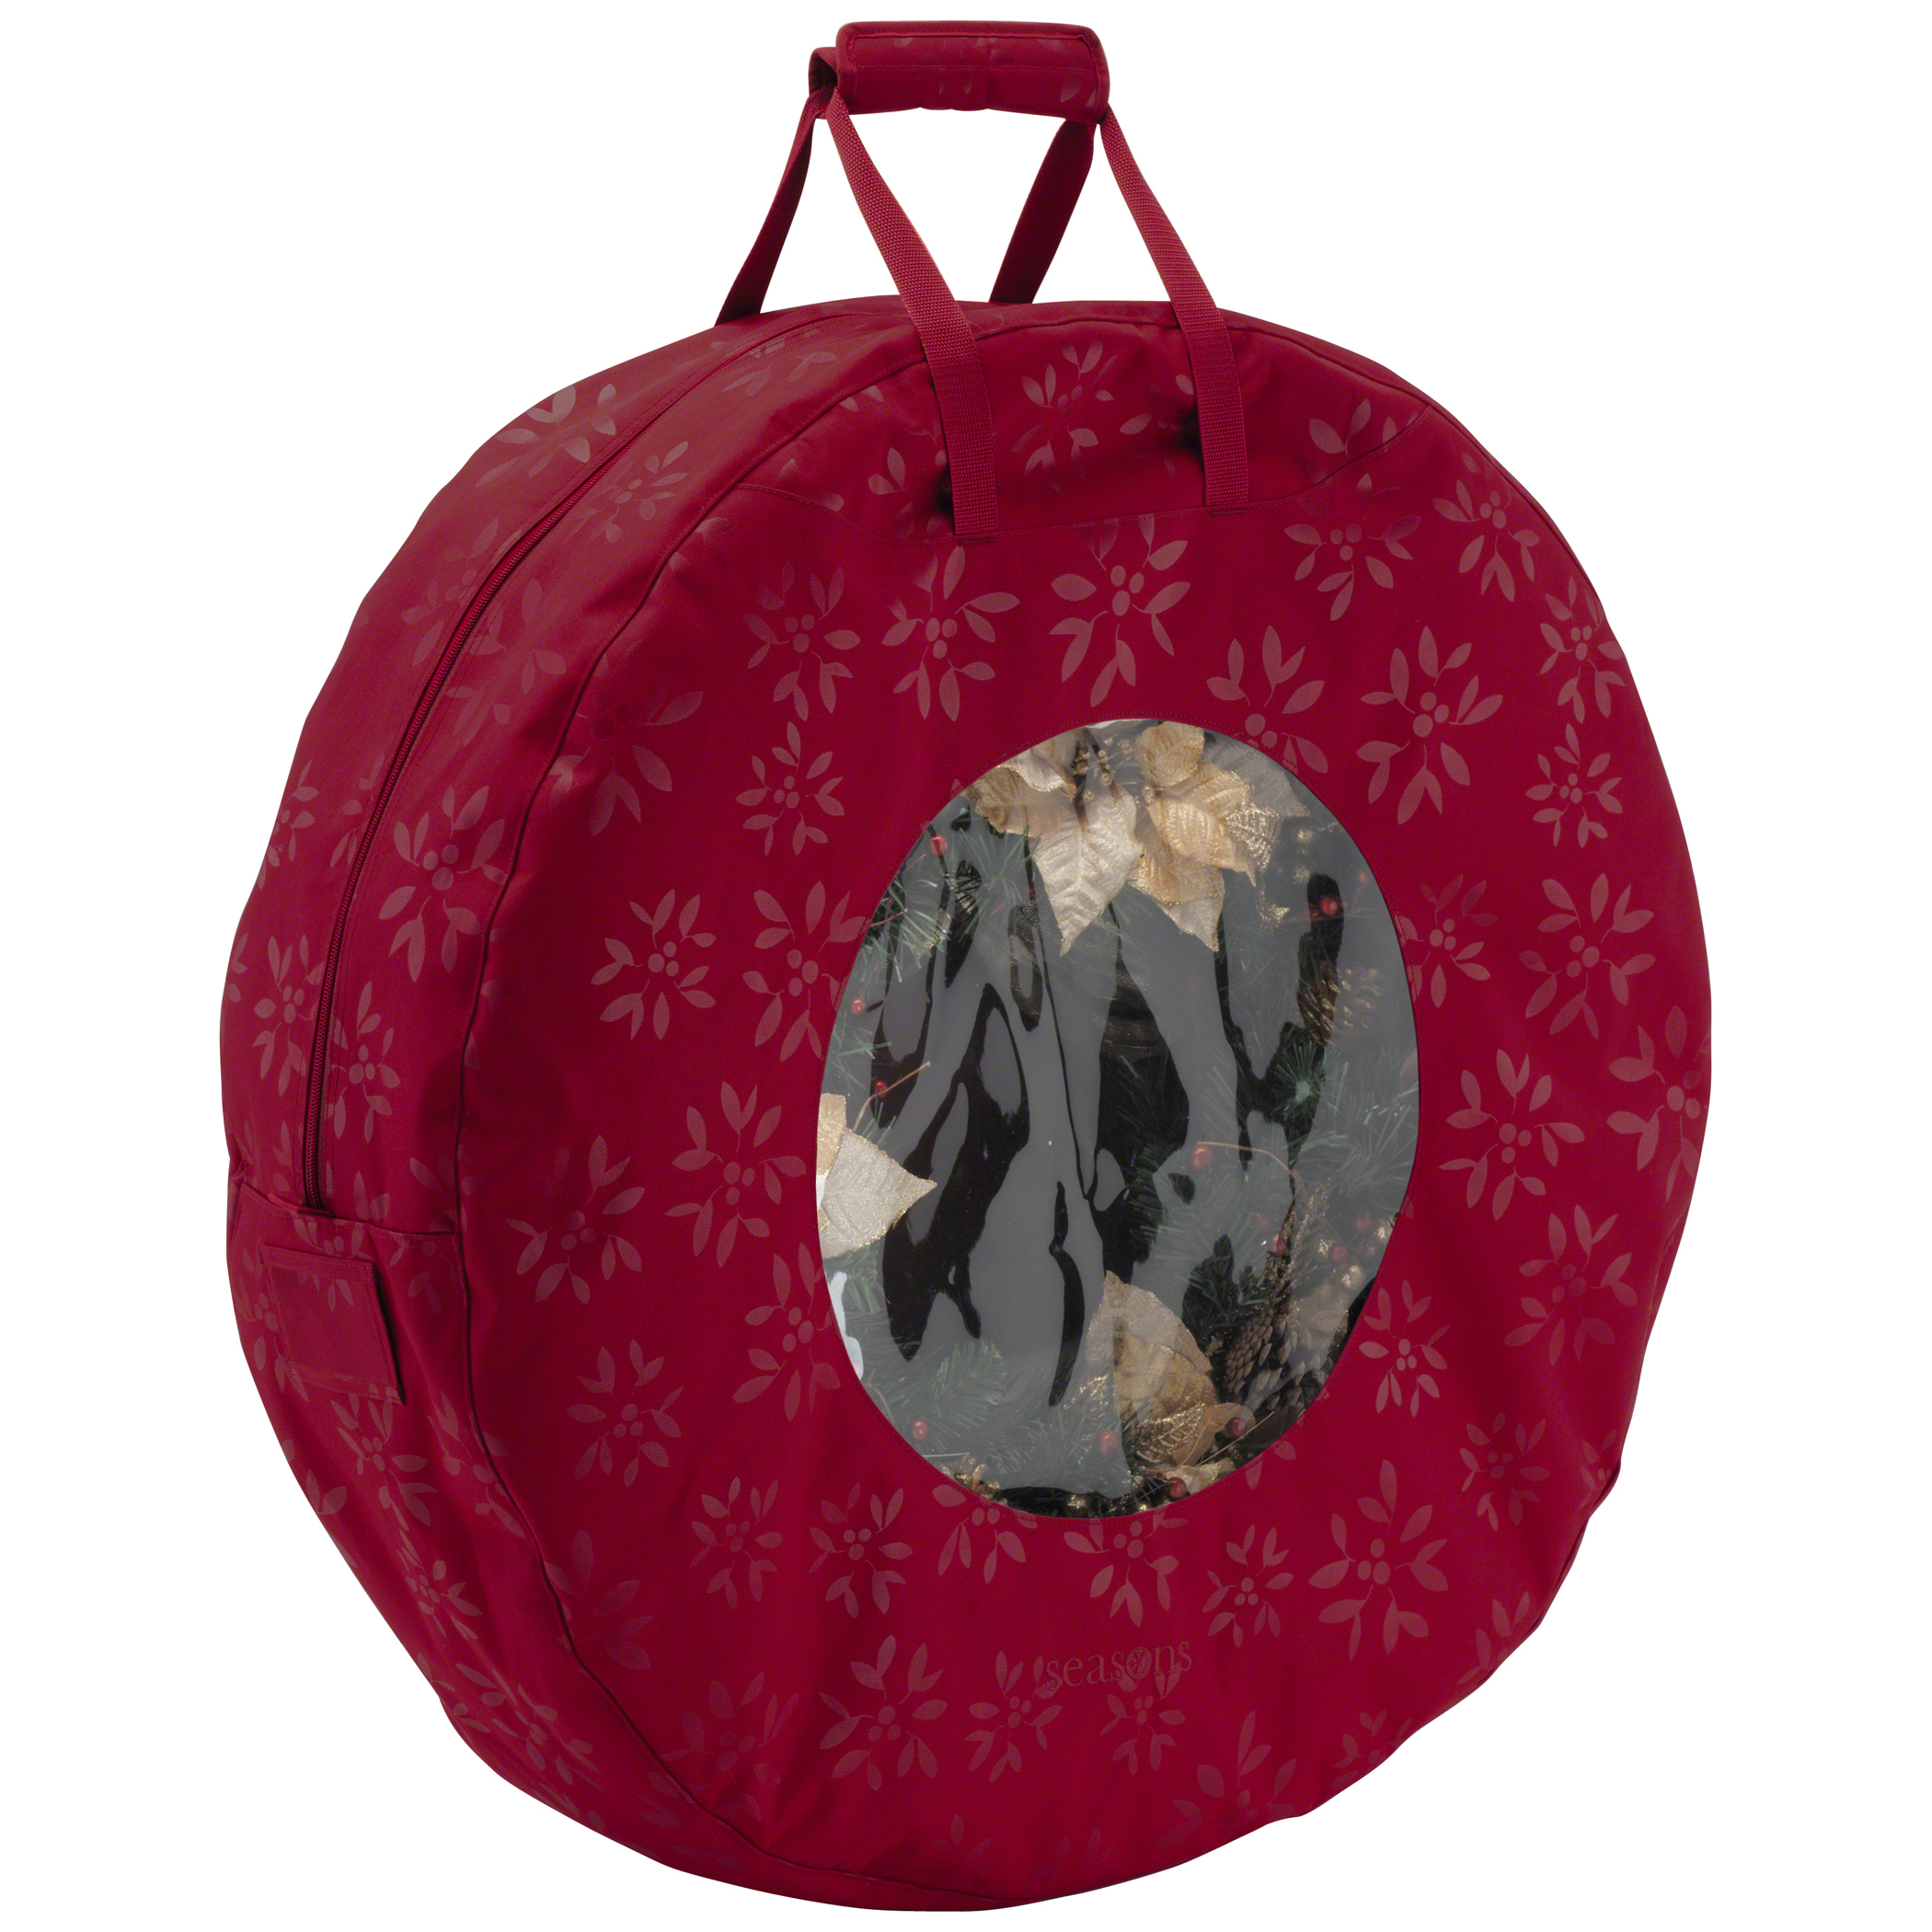 Classic Accessories Seasons Wreath Storage Bag - Heavy-Duty Holiday Storage, Large